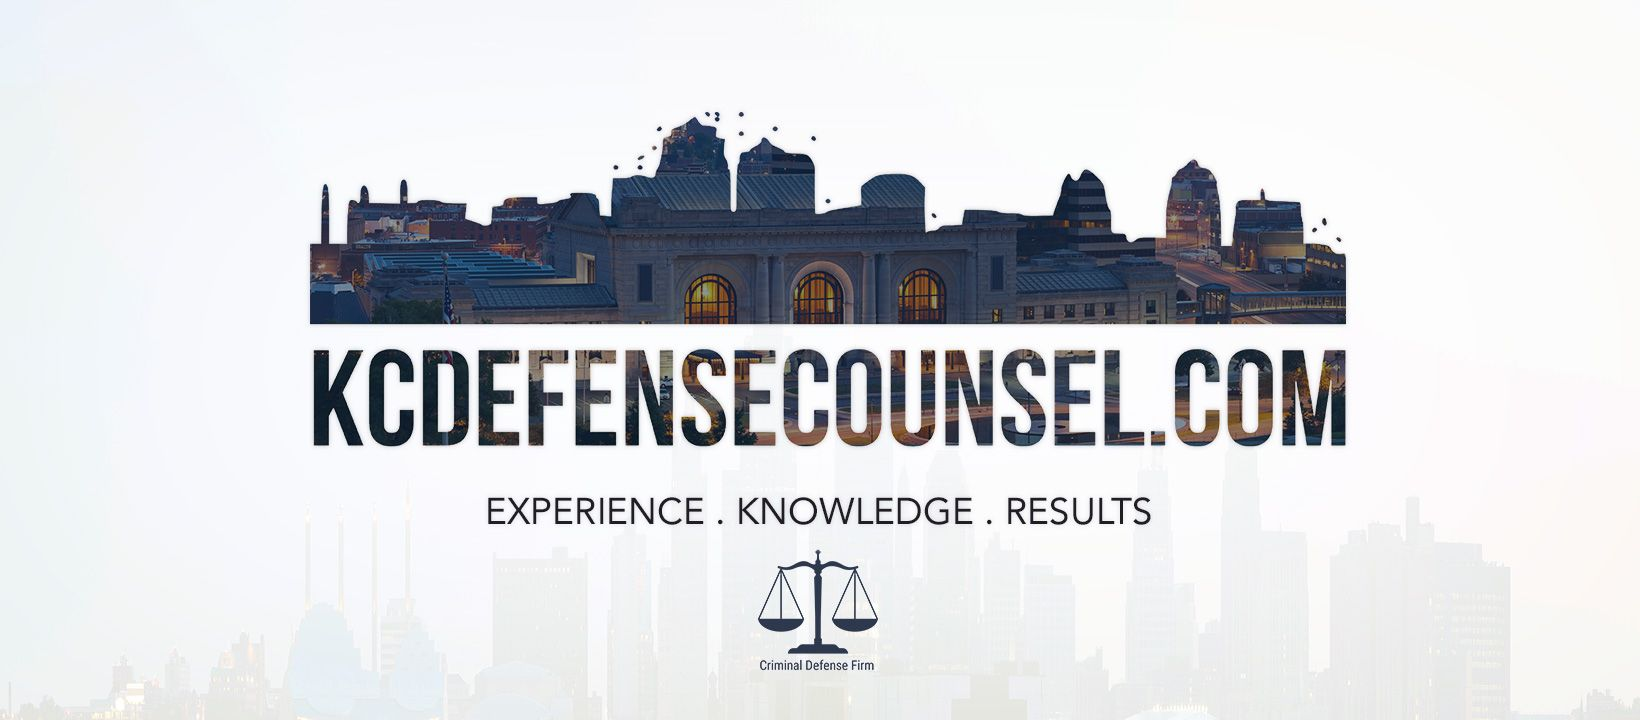 Kansas City Law Firms Kc Defense Counsel And Speeding Ticket Kc